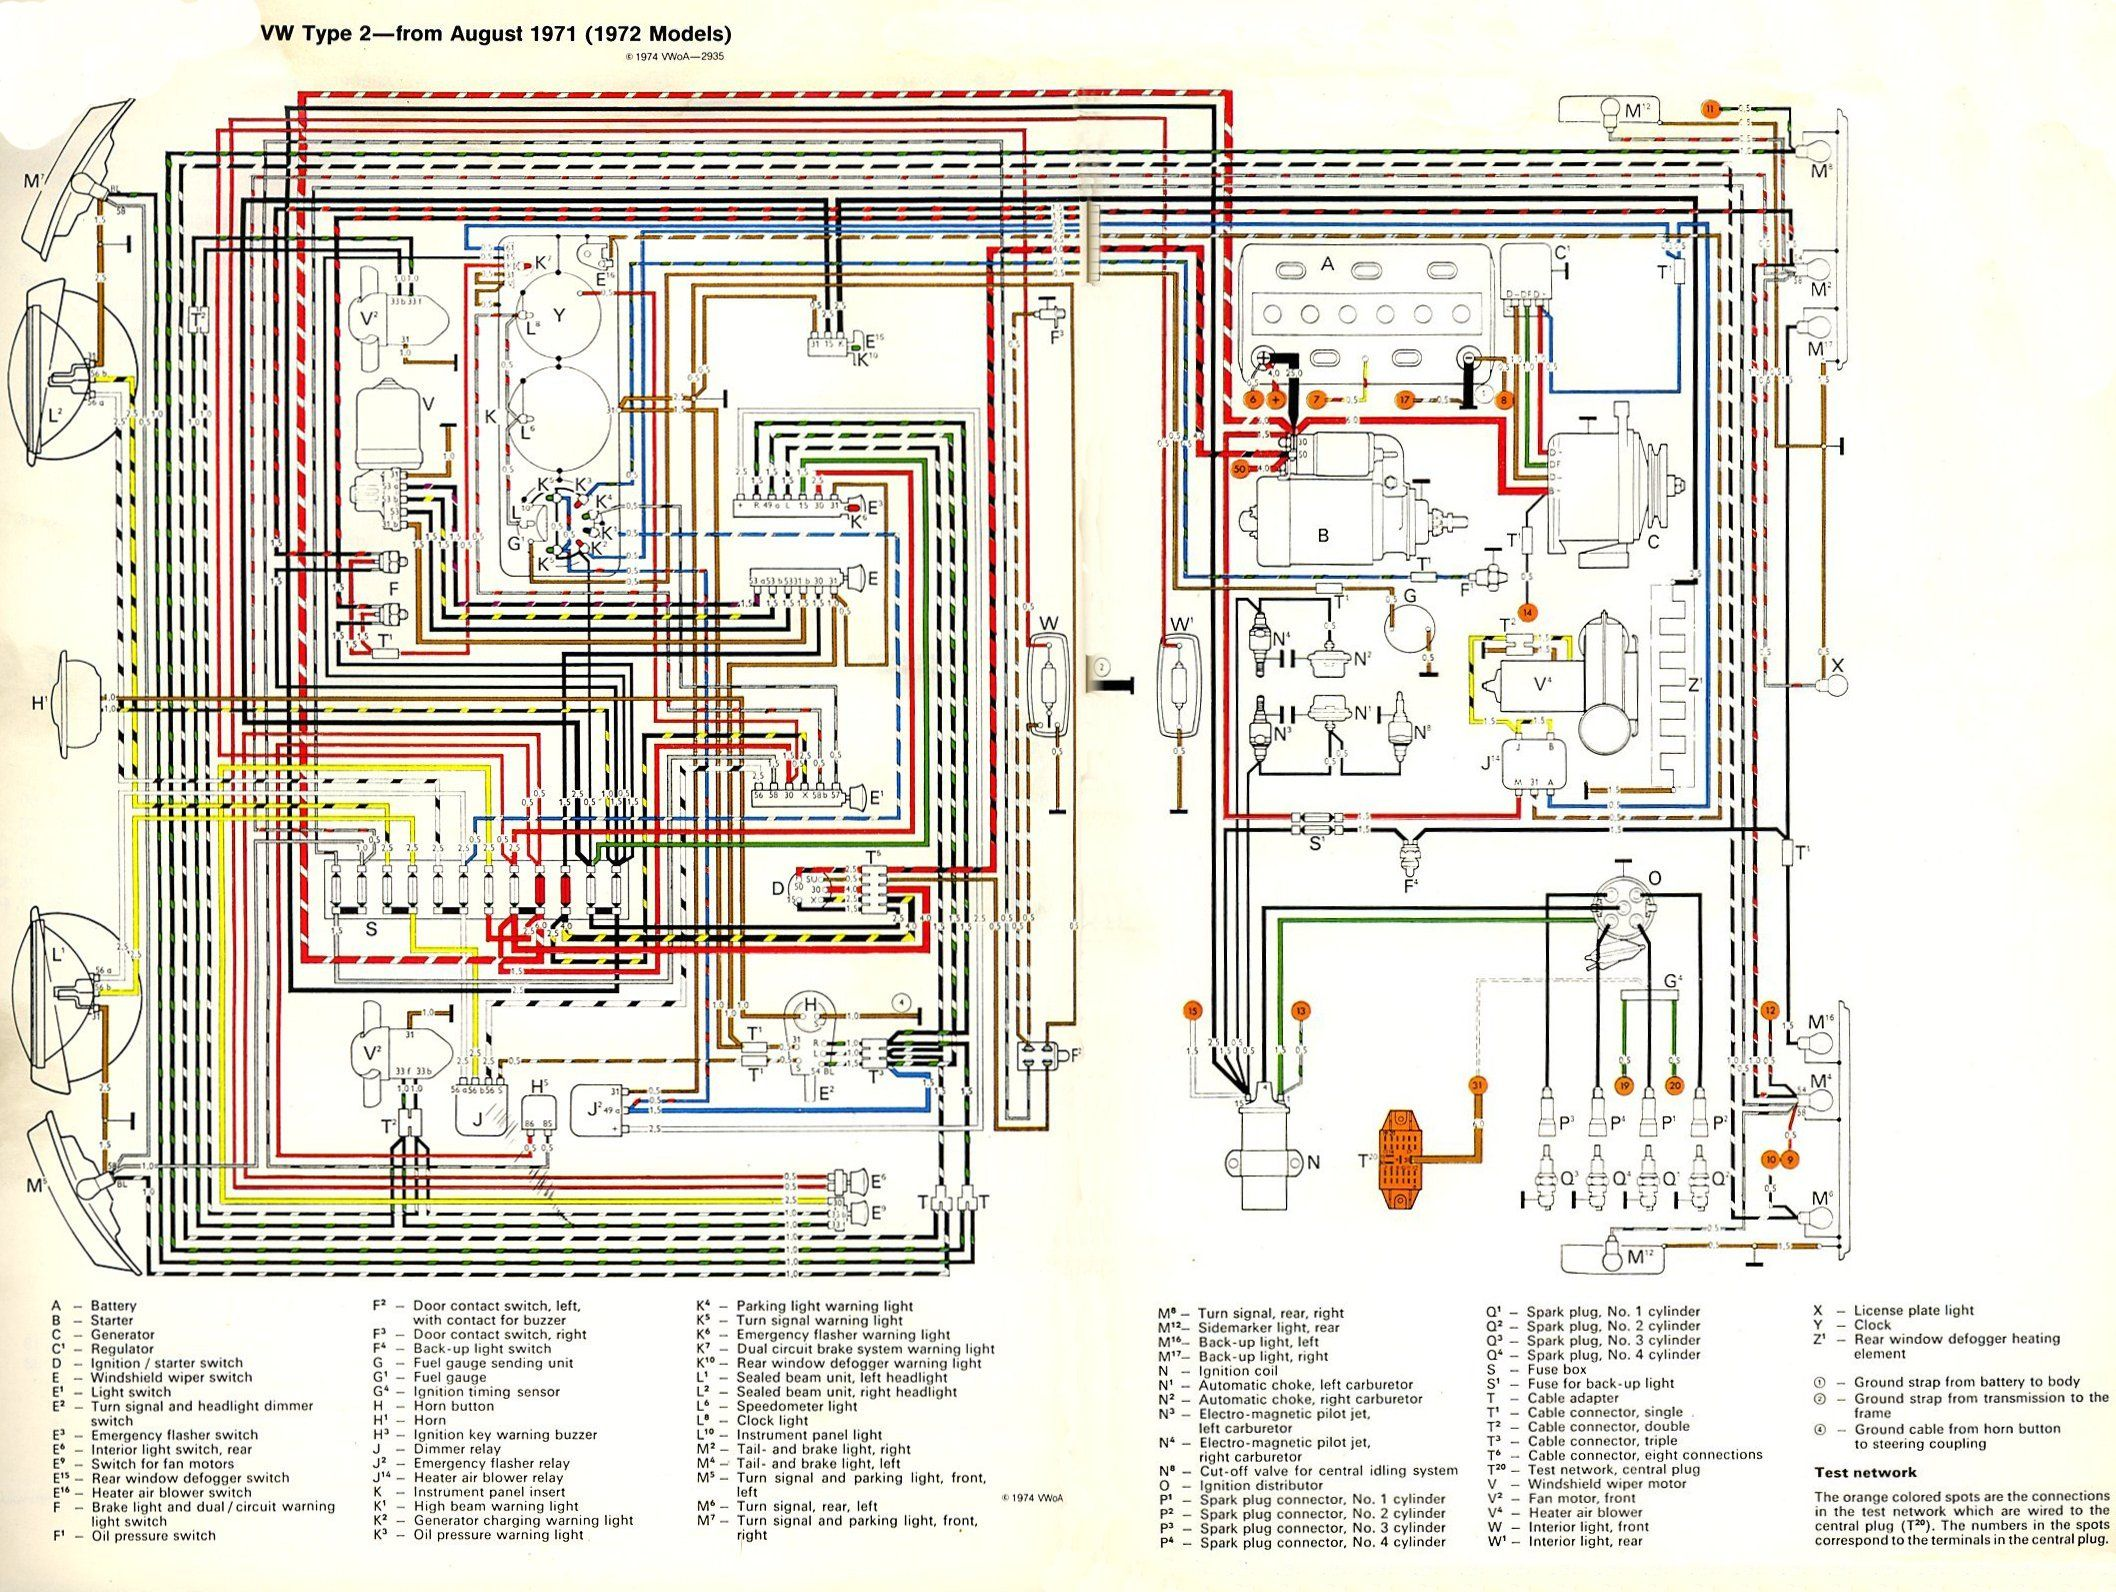 wiring diagram vw super beetle the wiring diagram 1974 vw camper wiring diagram 1974 wiring diagrams for car wiring diagram